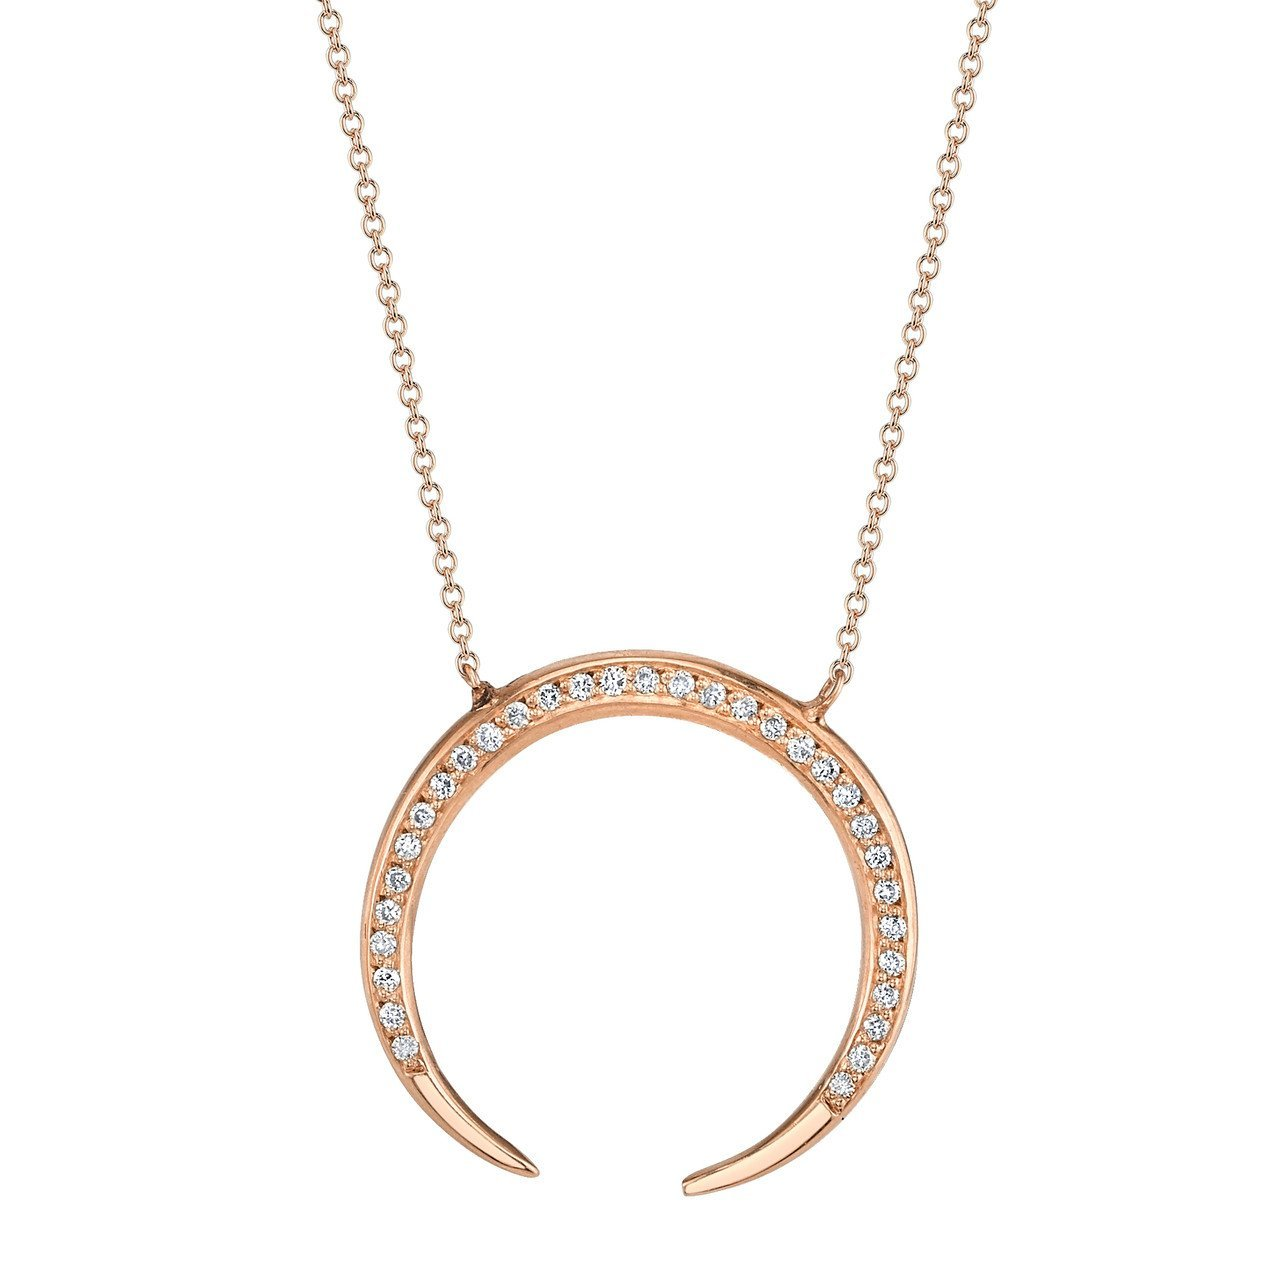 Gabriela Artigas Eternal Necklace with White Pavé